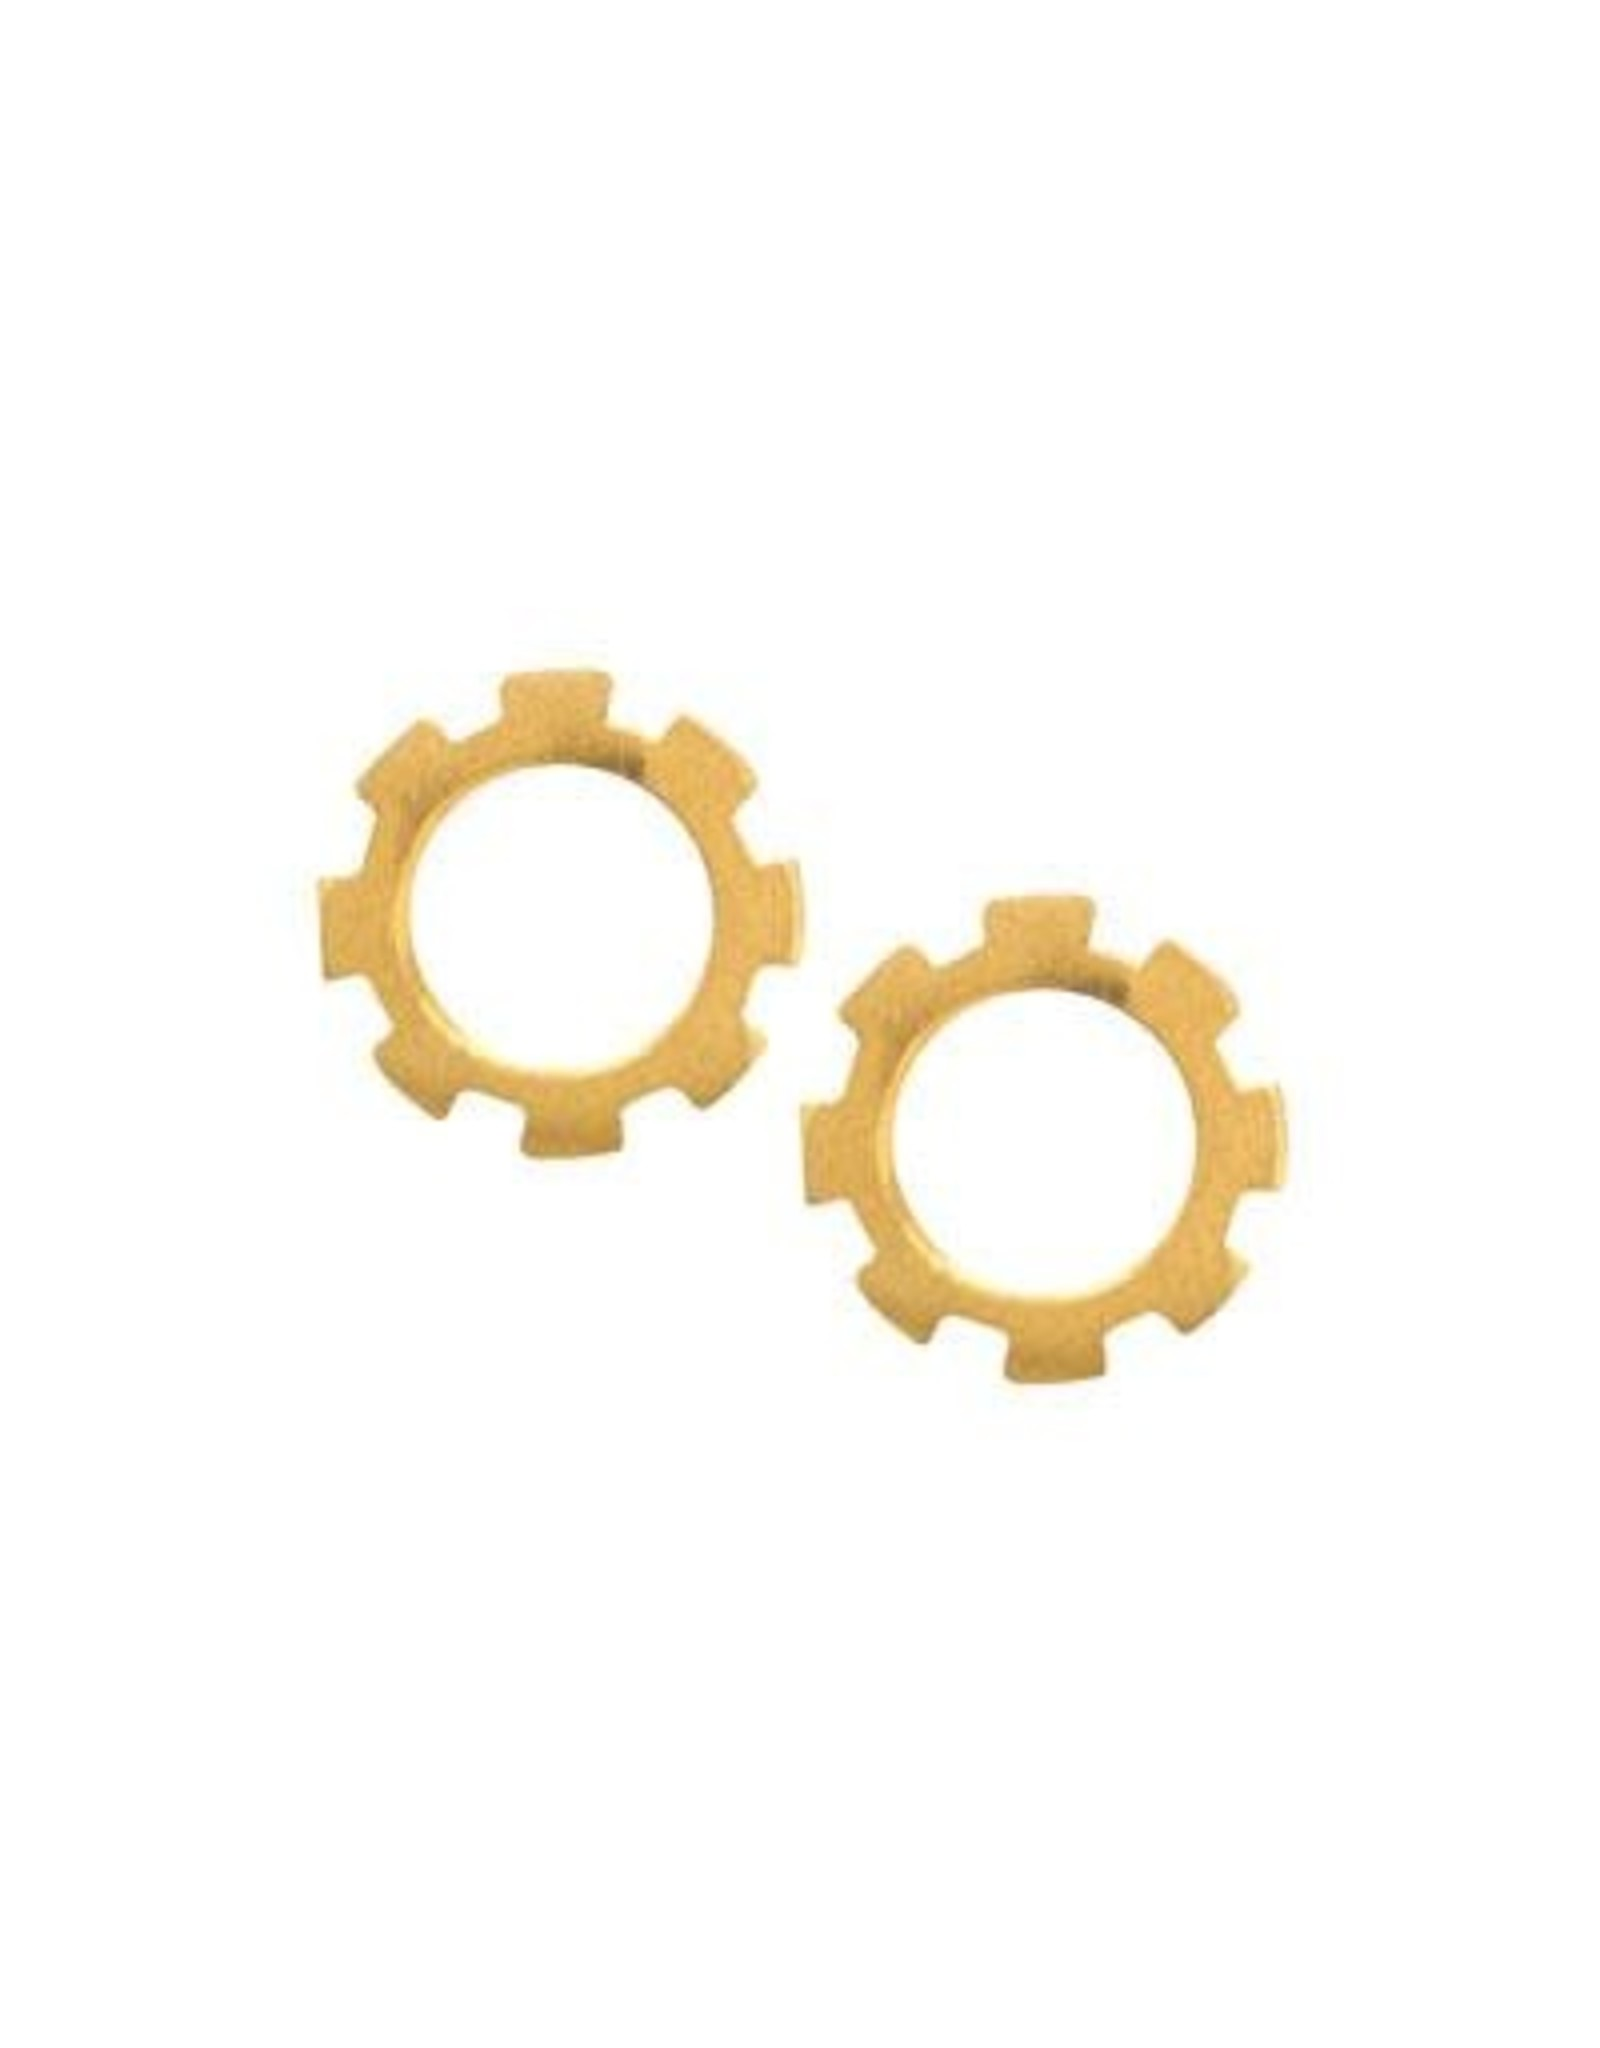 Activating Gold Plated Stud Earrings, Mexico